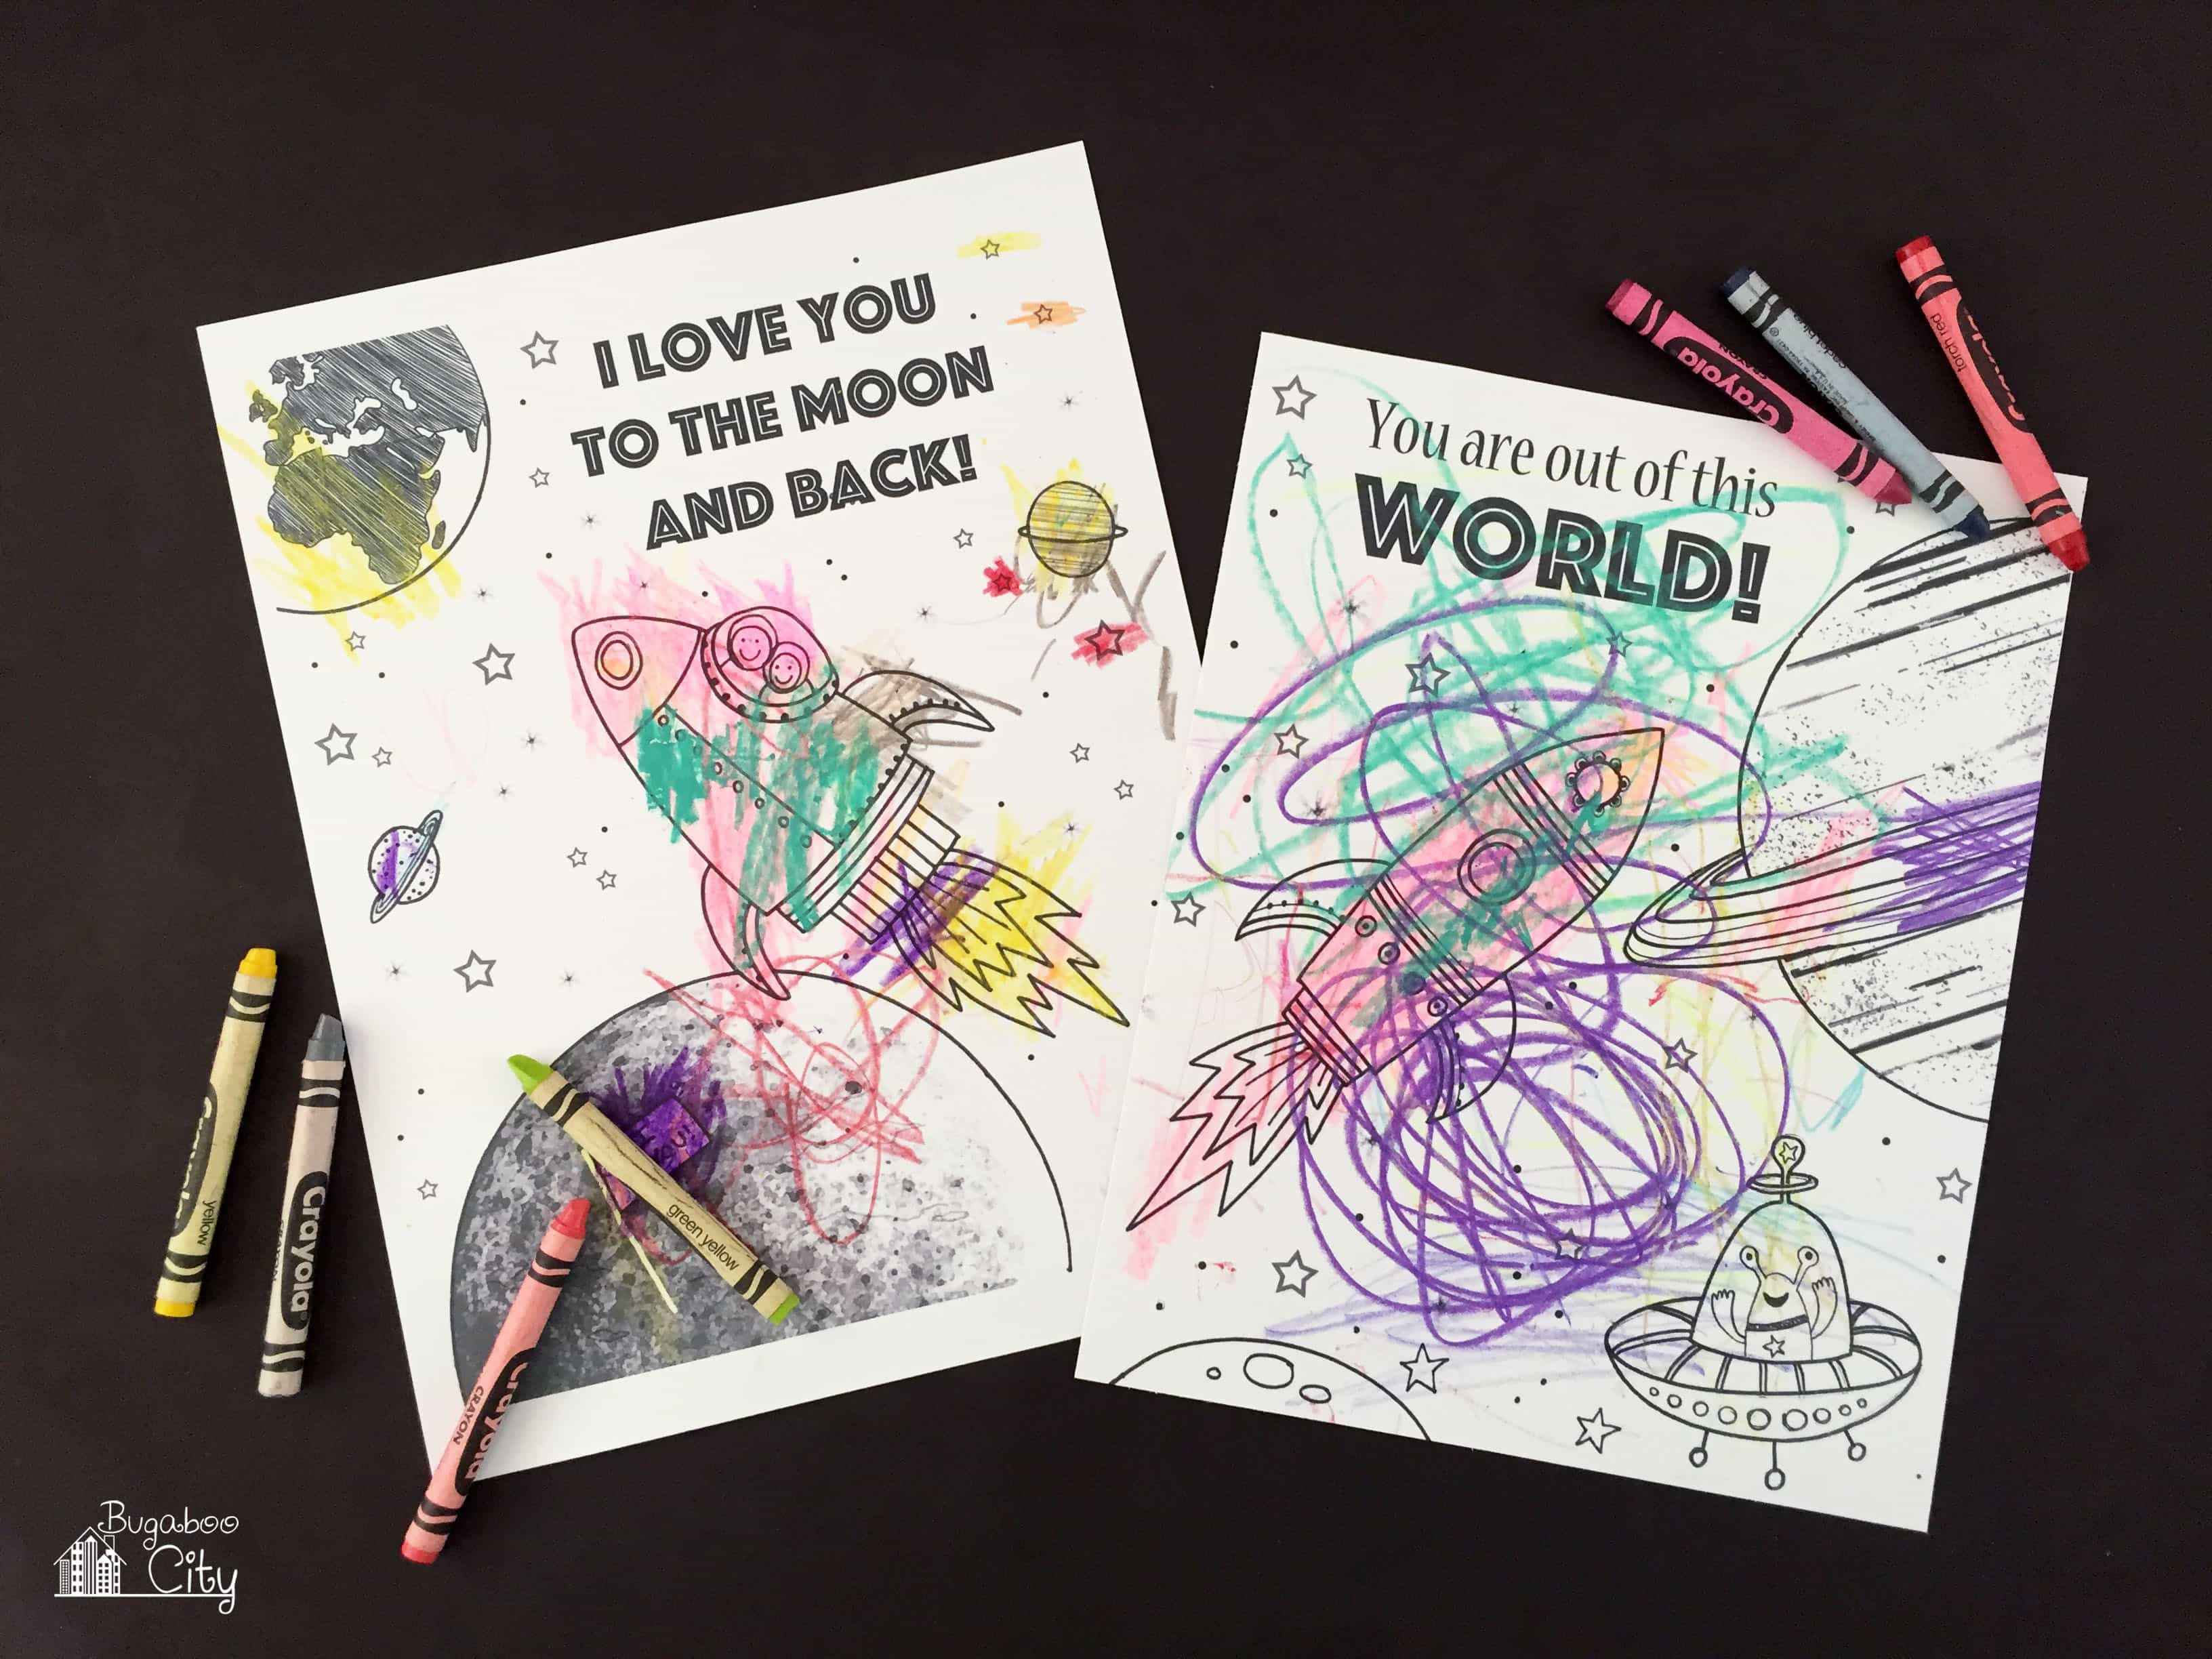 Coloring Pages I Love You : I love you wallpaper